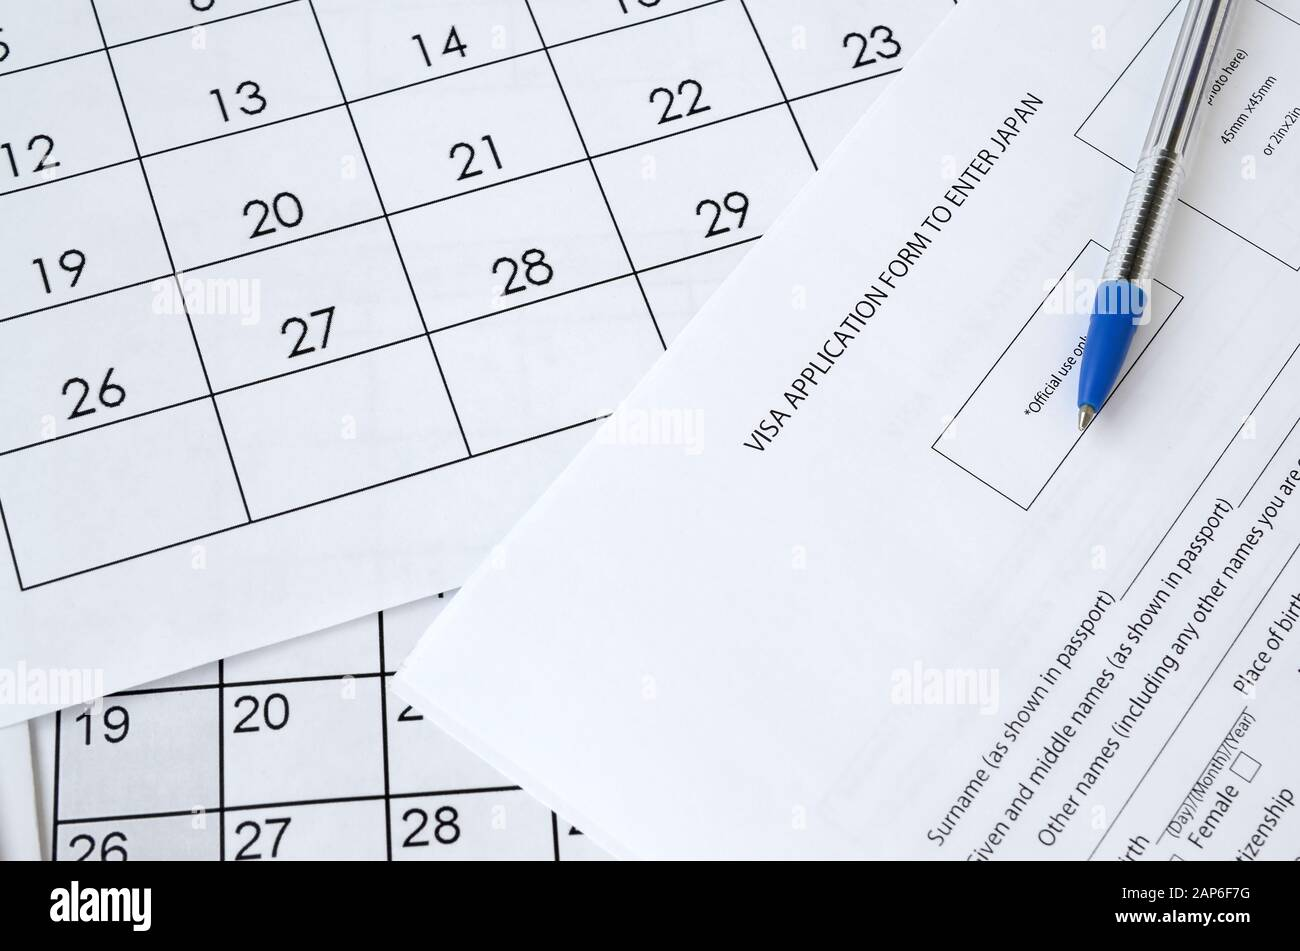 Visa Application Form To Enter Japan And Blue Pen On Paper Calendar Page Close Up Stock Photo Alamy